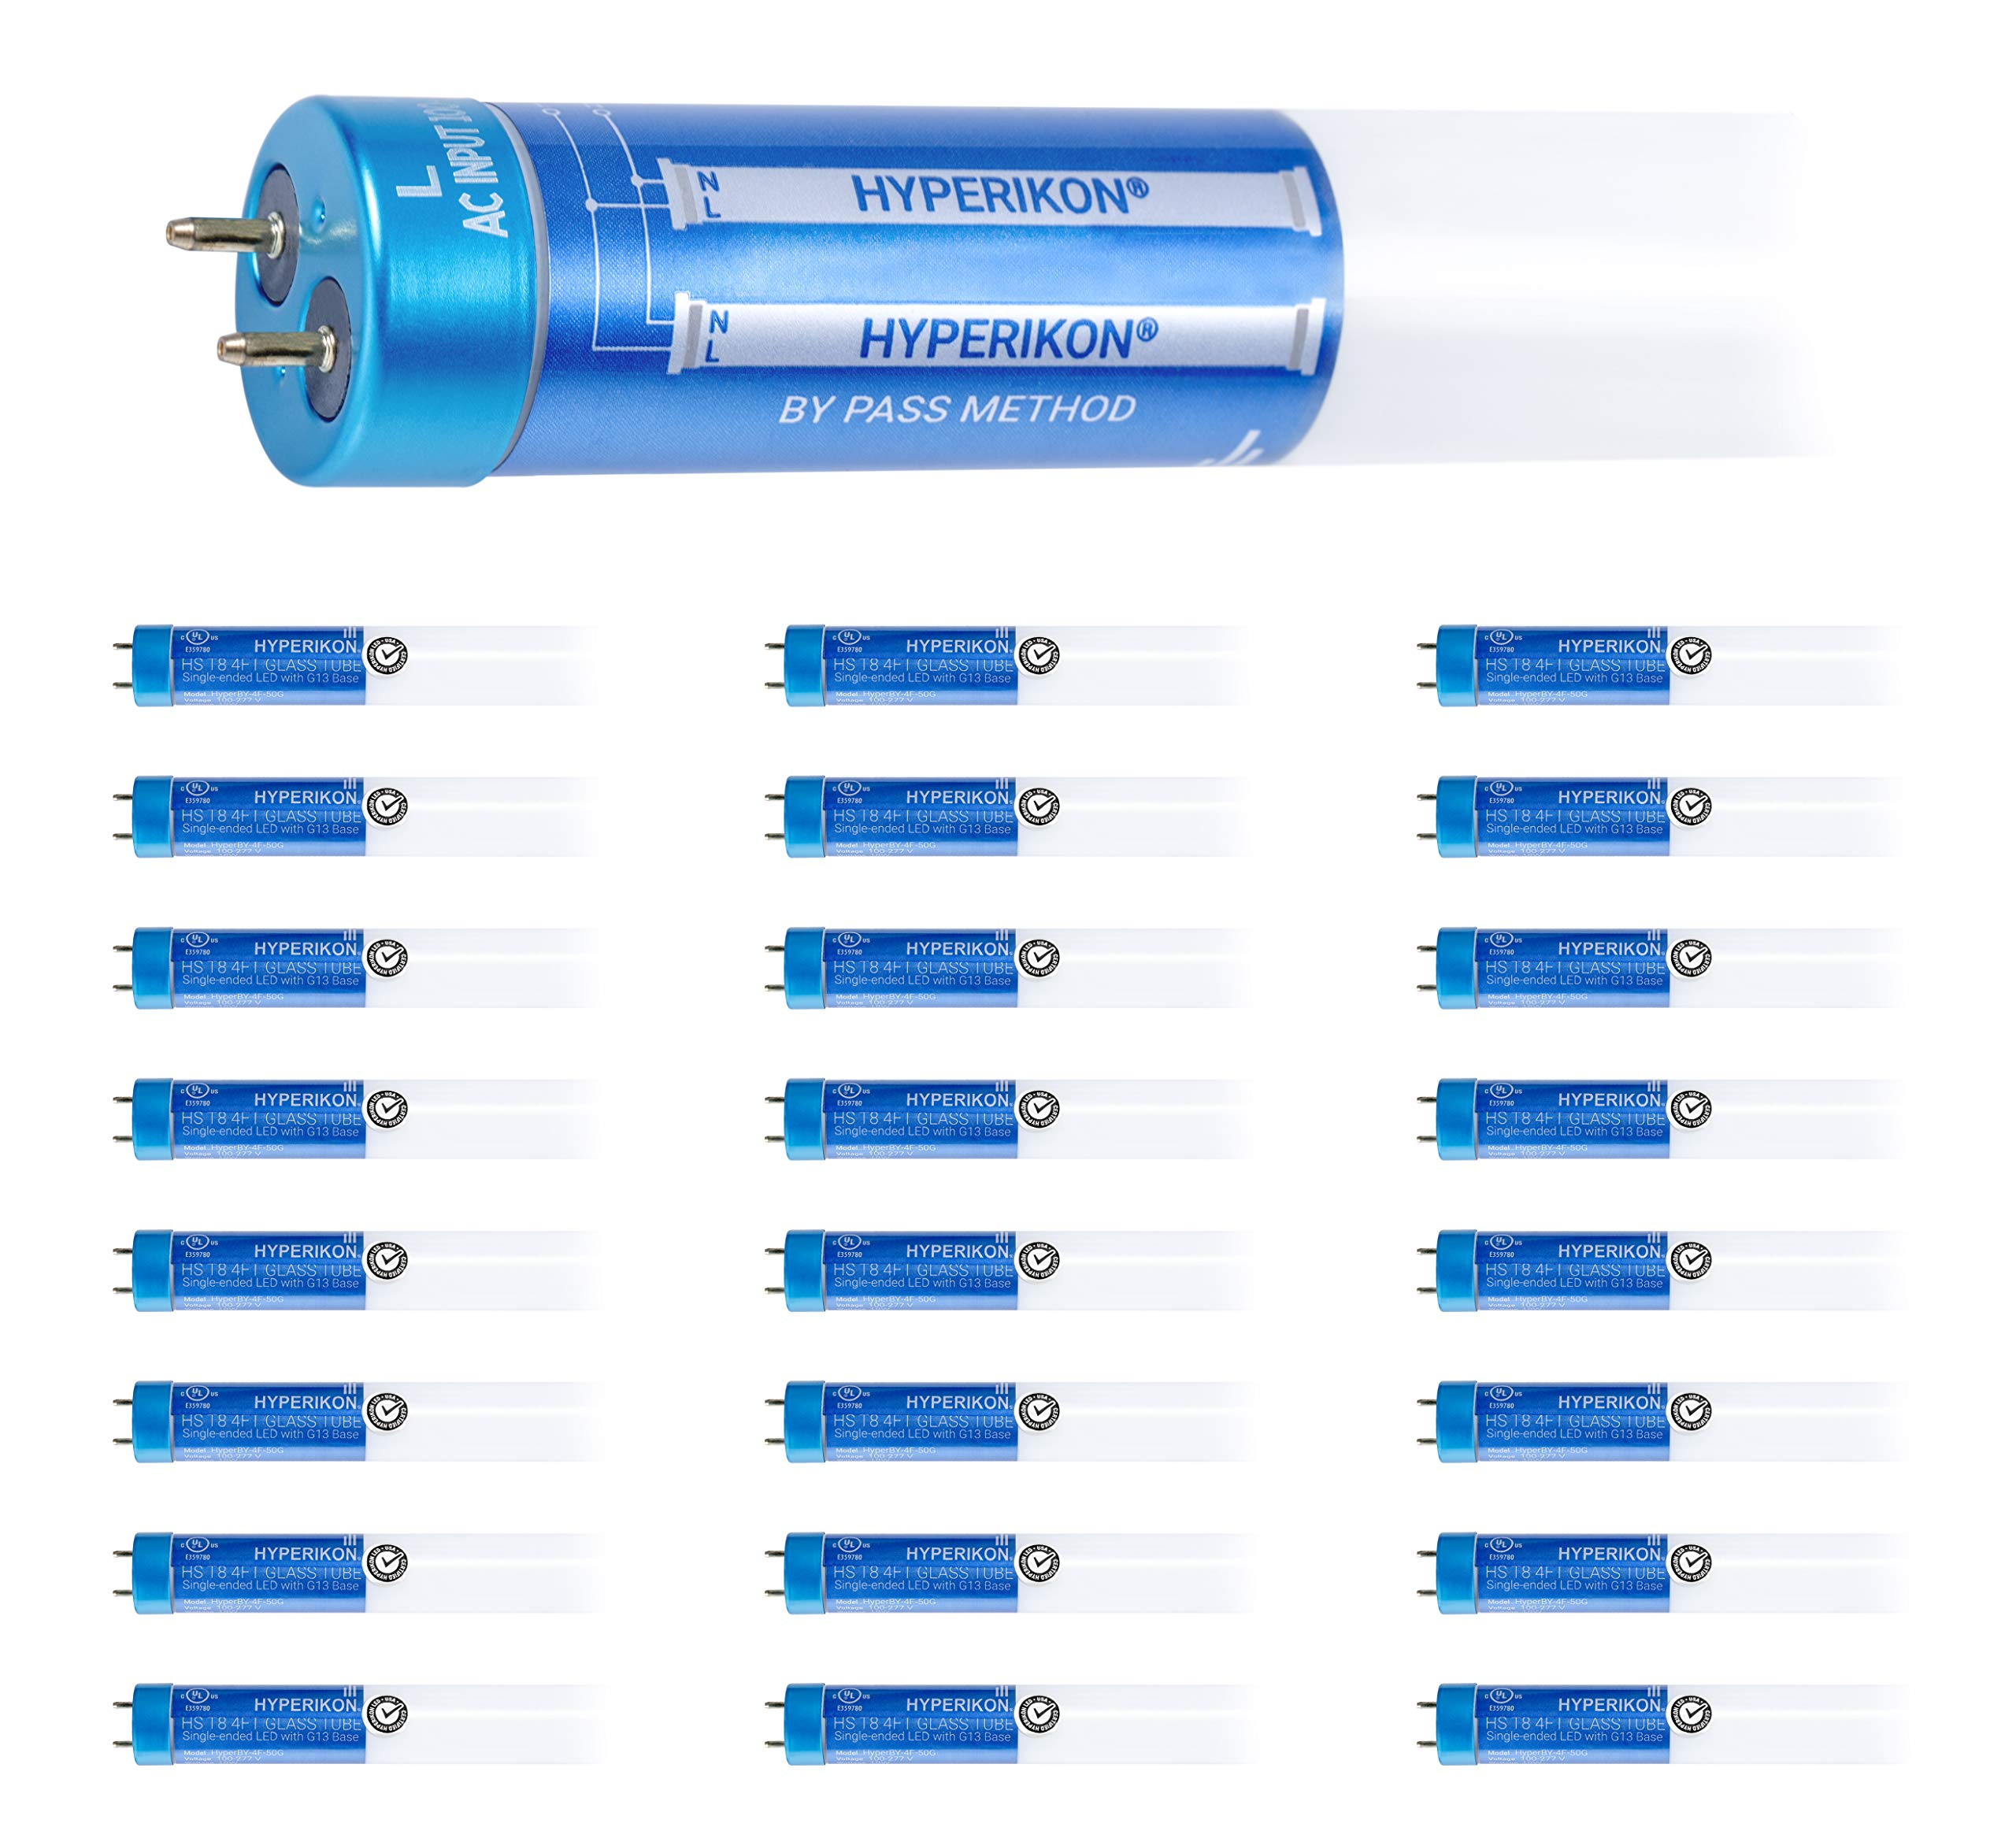 Hyperikon T8 4 Foot LED Bulb, 40 Watt (18W) Glass, T10 T12 Light Tube, 4000K Daylight, Dual End Ballast Bypass, Frosted, 24 Pack